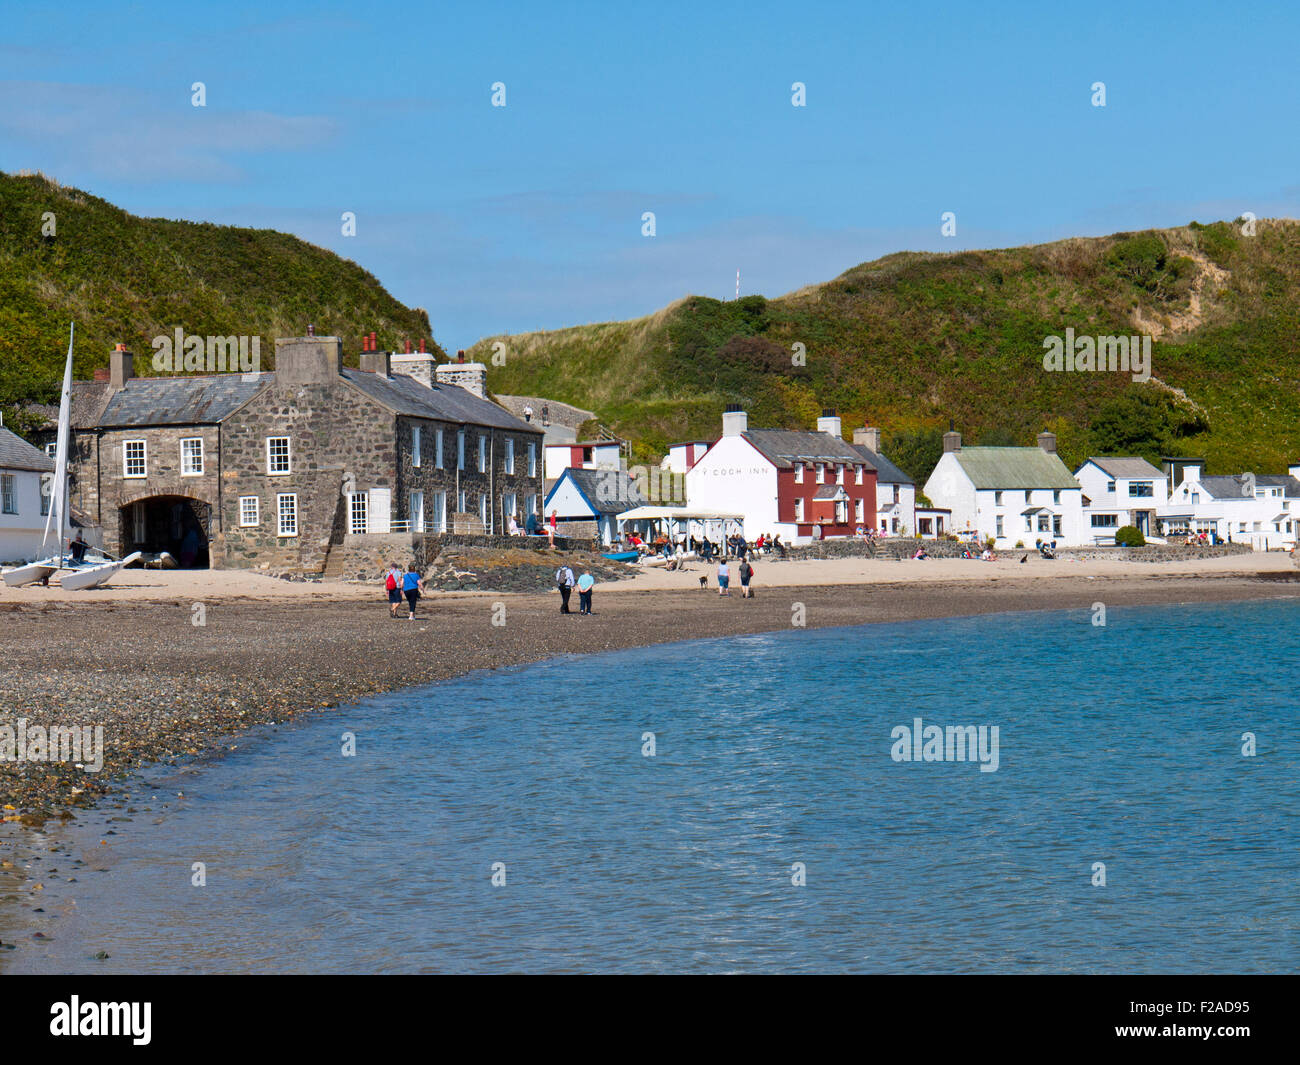 Porthdinllaen and beach with the red Ty Coch Inn, Morfa Nevin, Gwynedd, North Wales, UK. - Stock Image